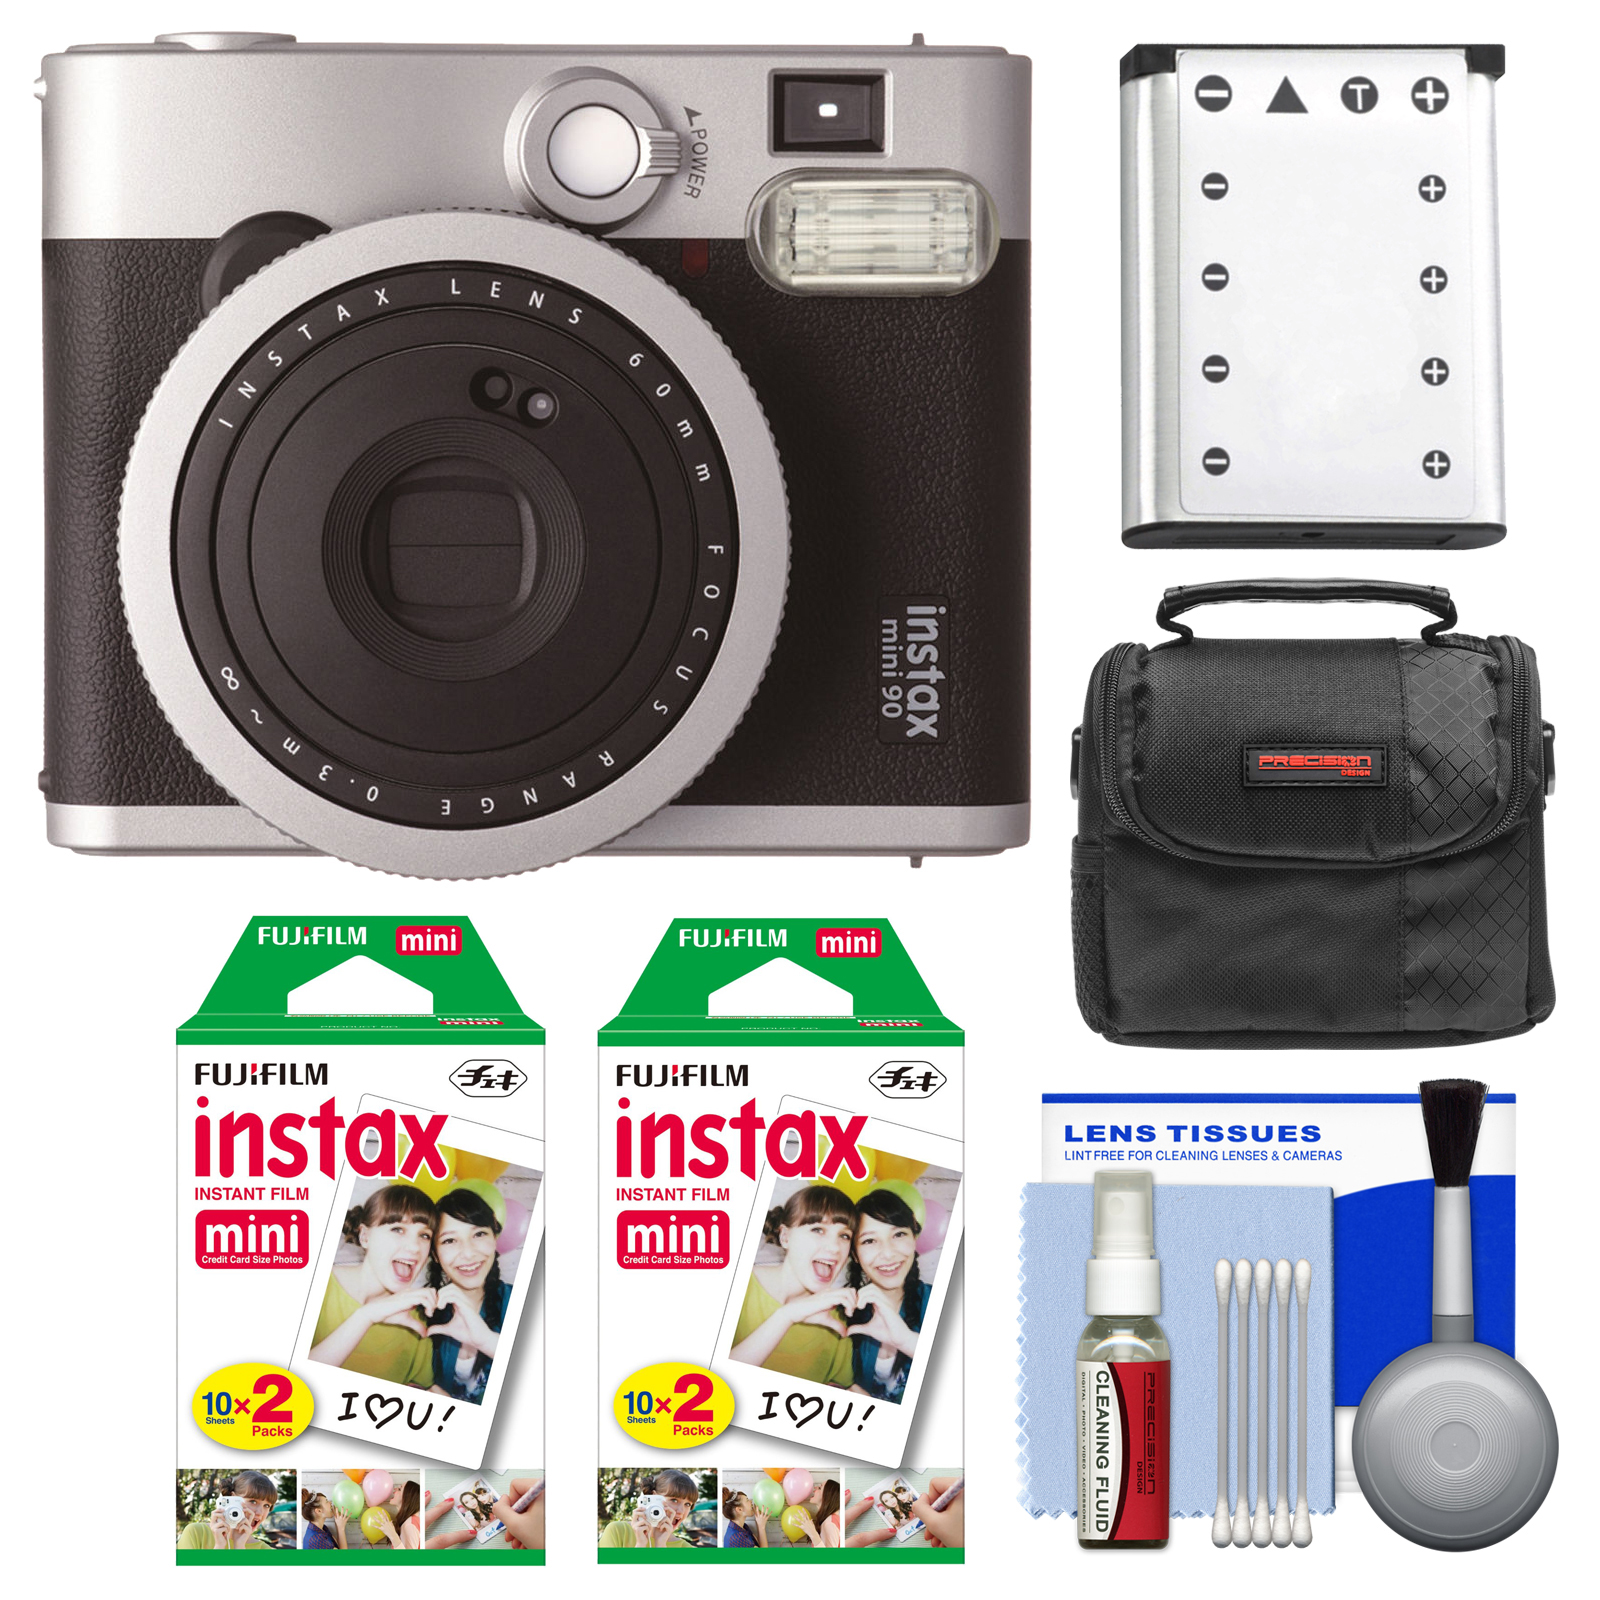 FujiFilm Instax Mini 90 Neo Classic Instant Film Camera with (2) Instant Film + Case + Battery + Cleaning Kit by Fujifilm